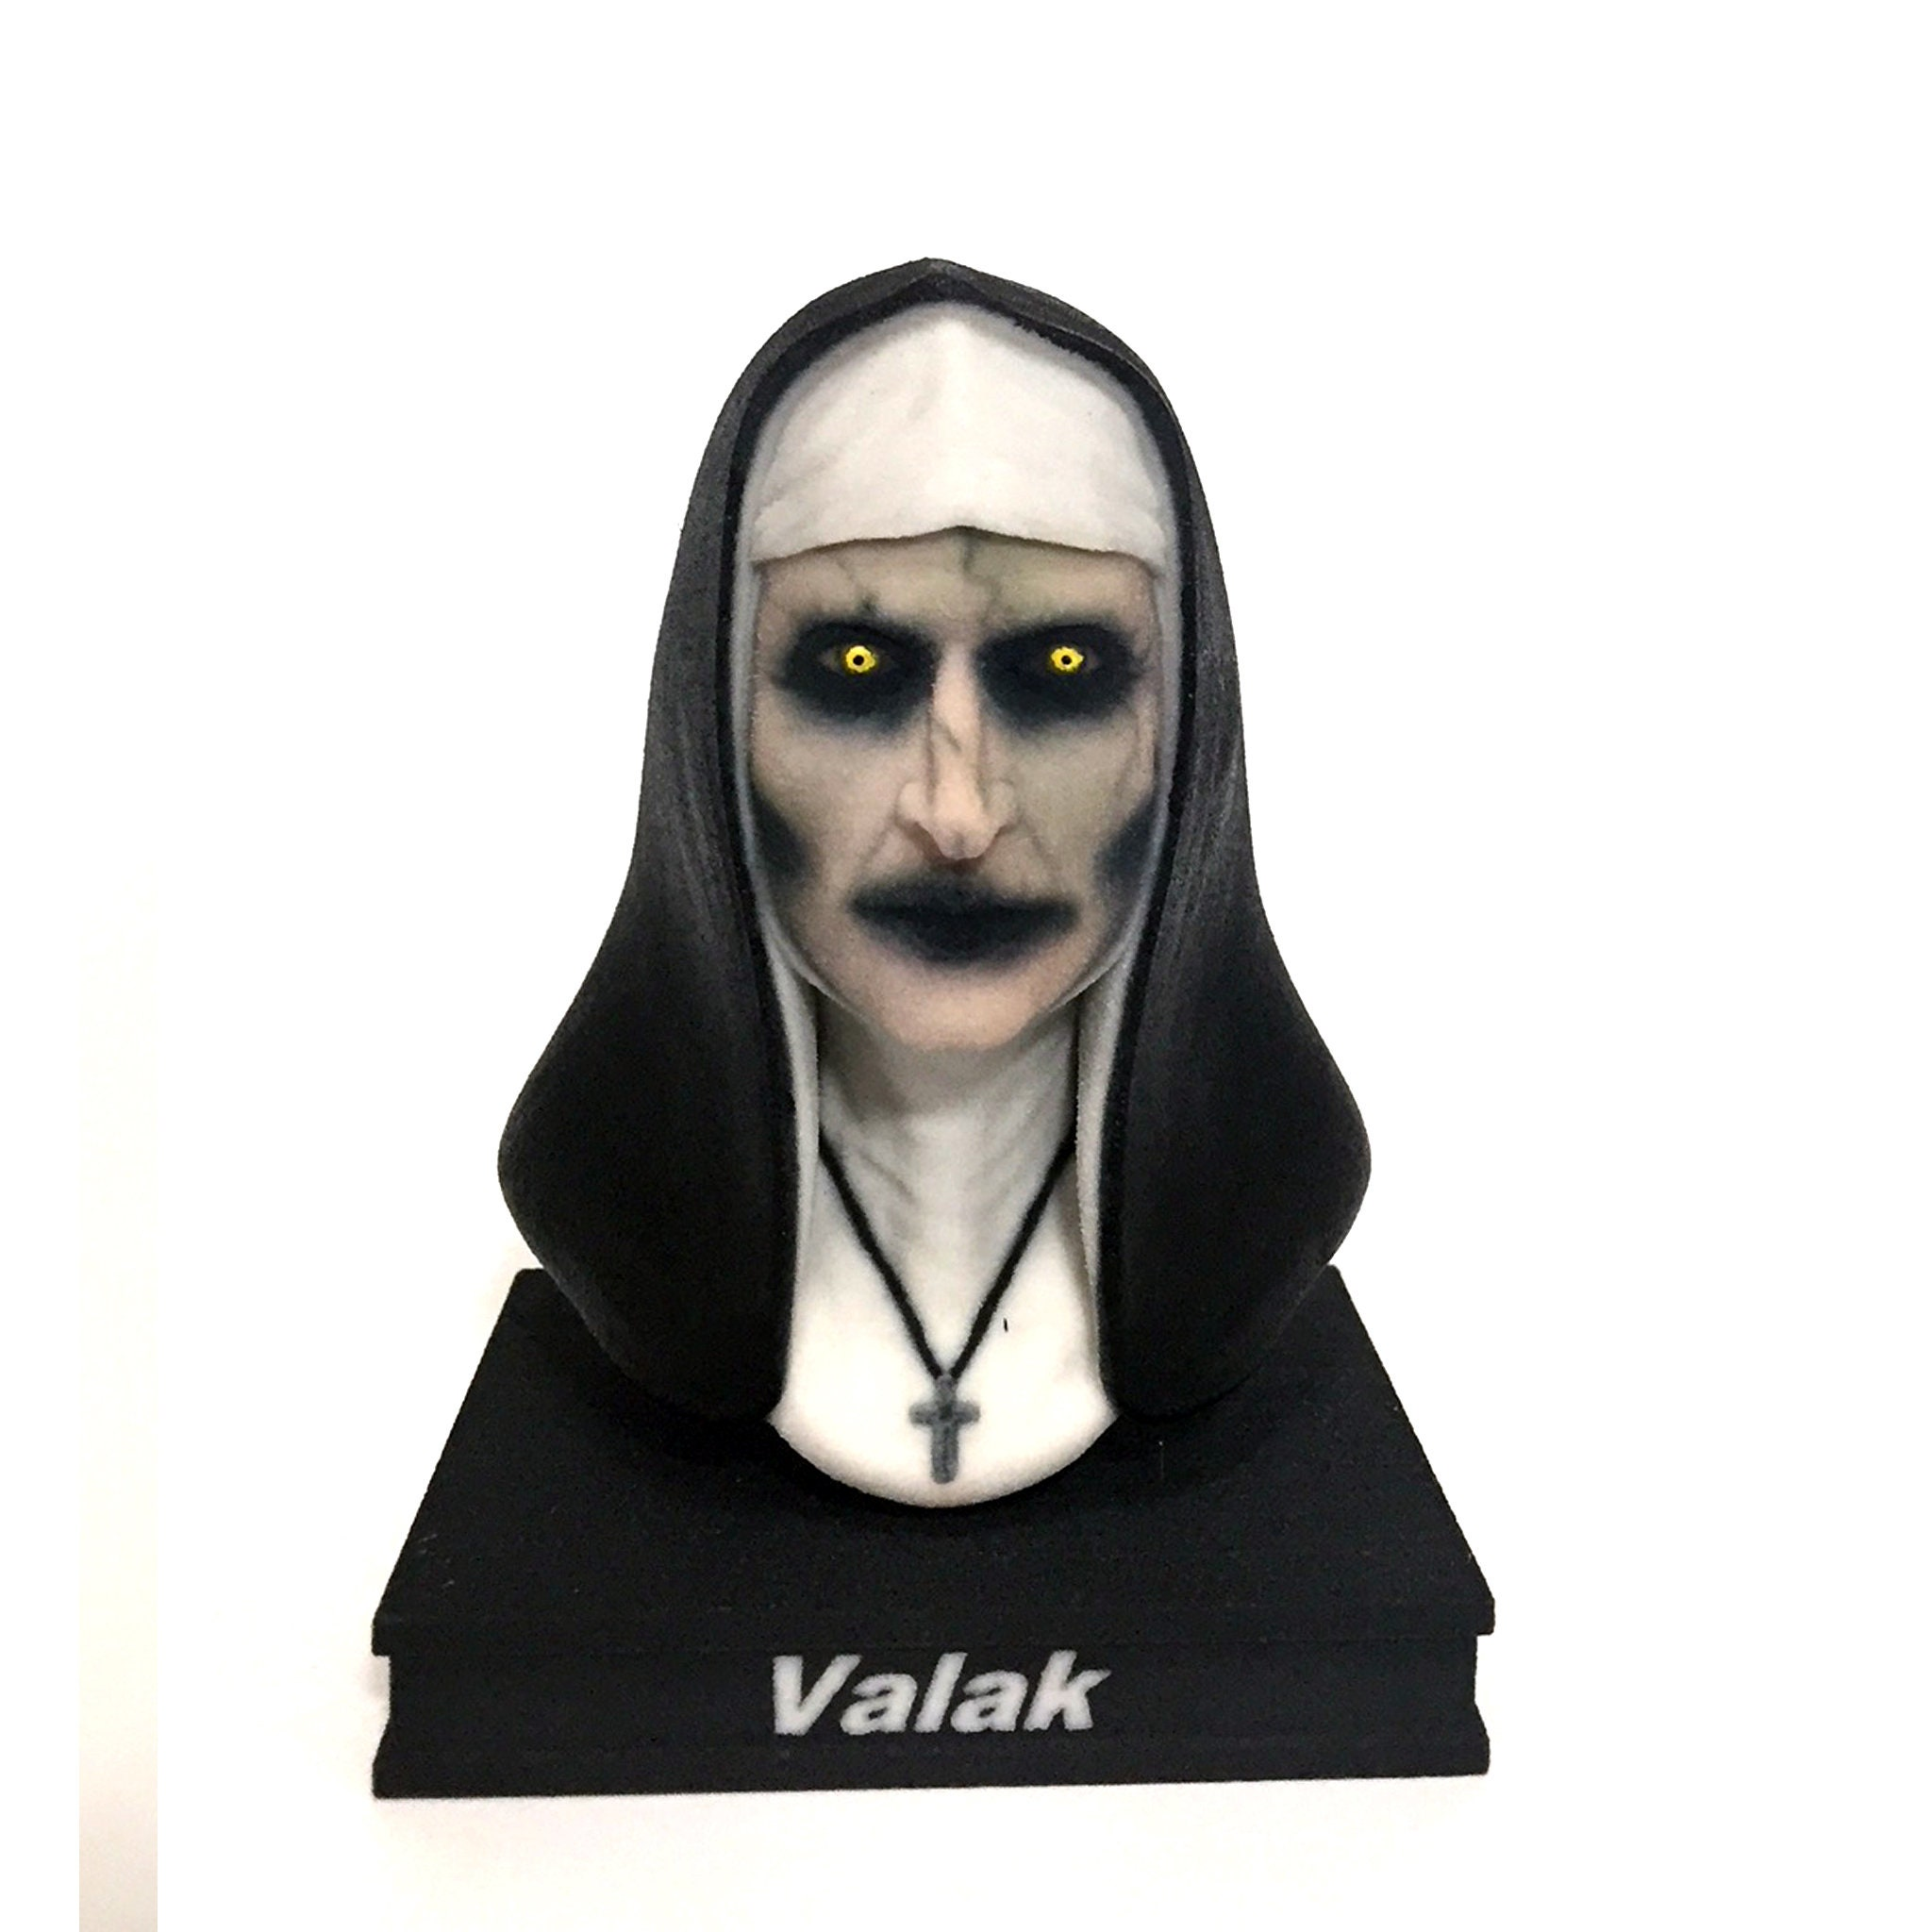 Valak Nun The Conjuring 2 Bust